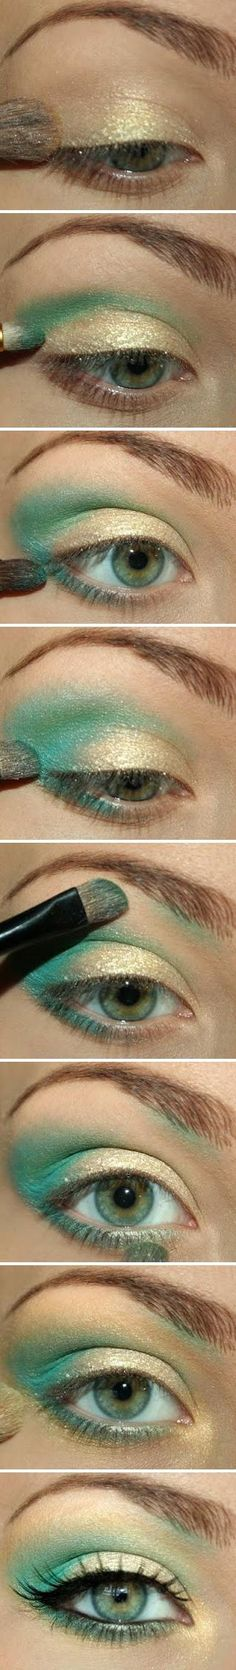 "Pretty ""mermaid"" eye makeup!"